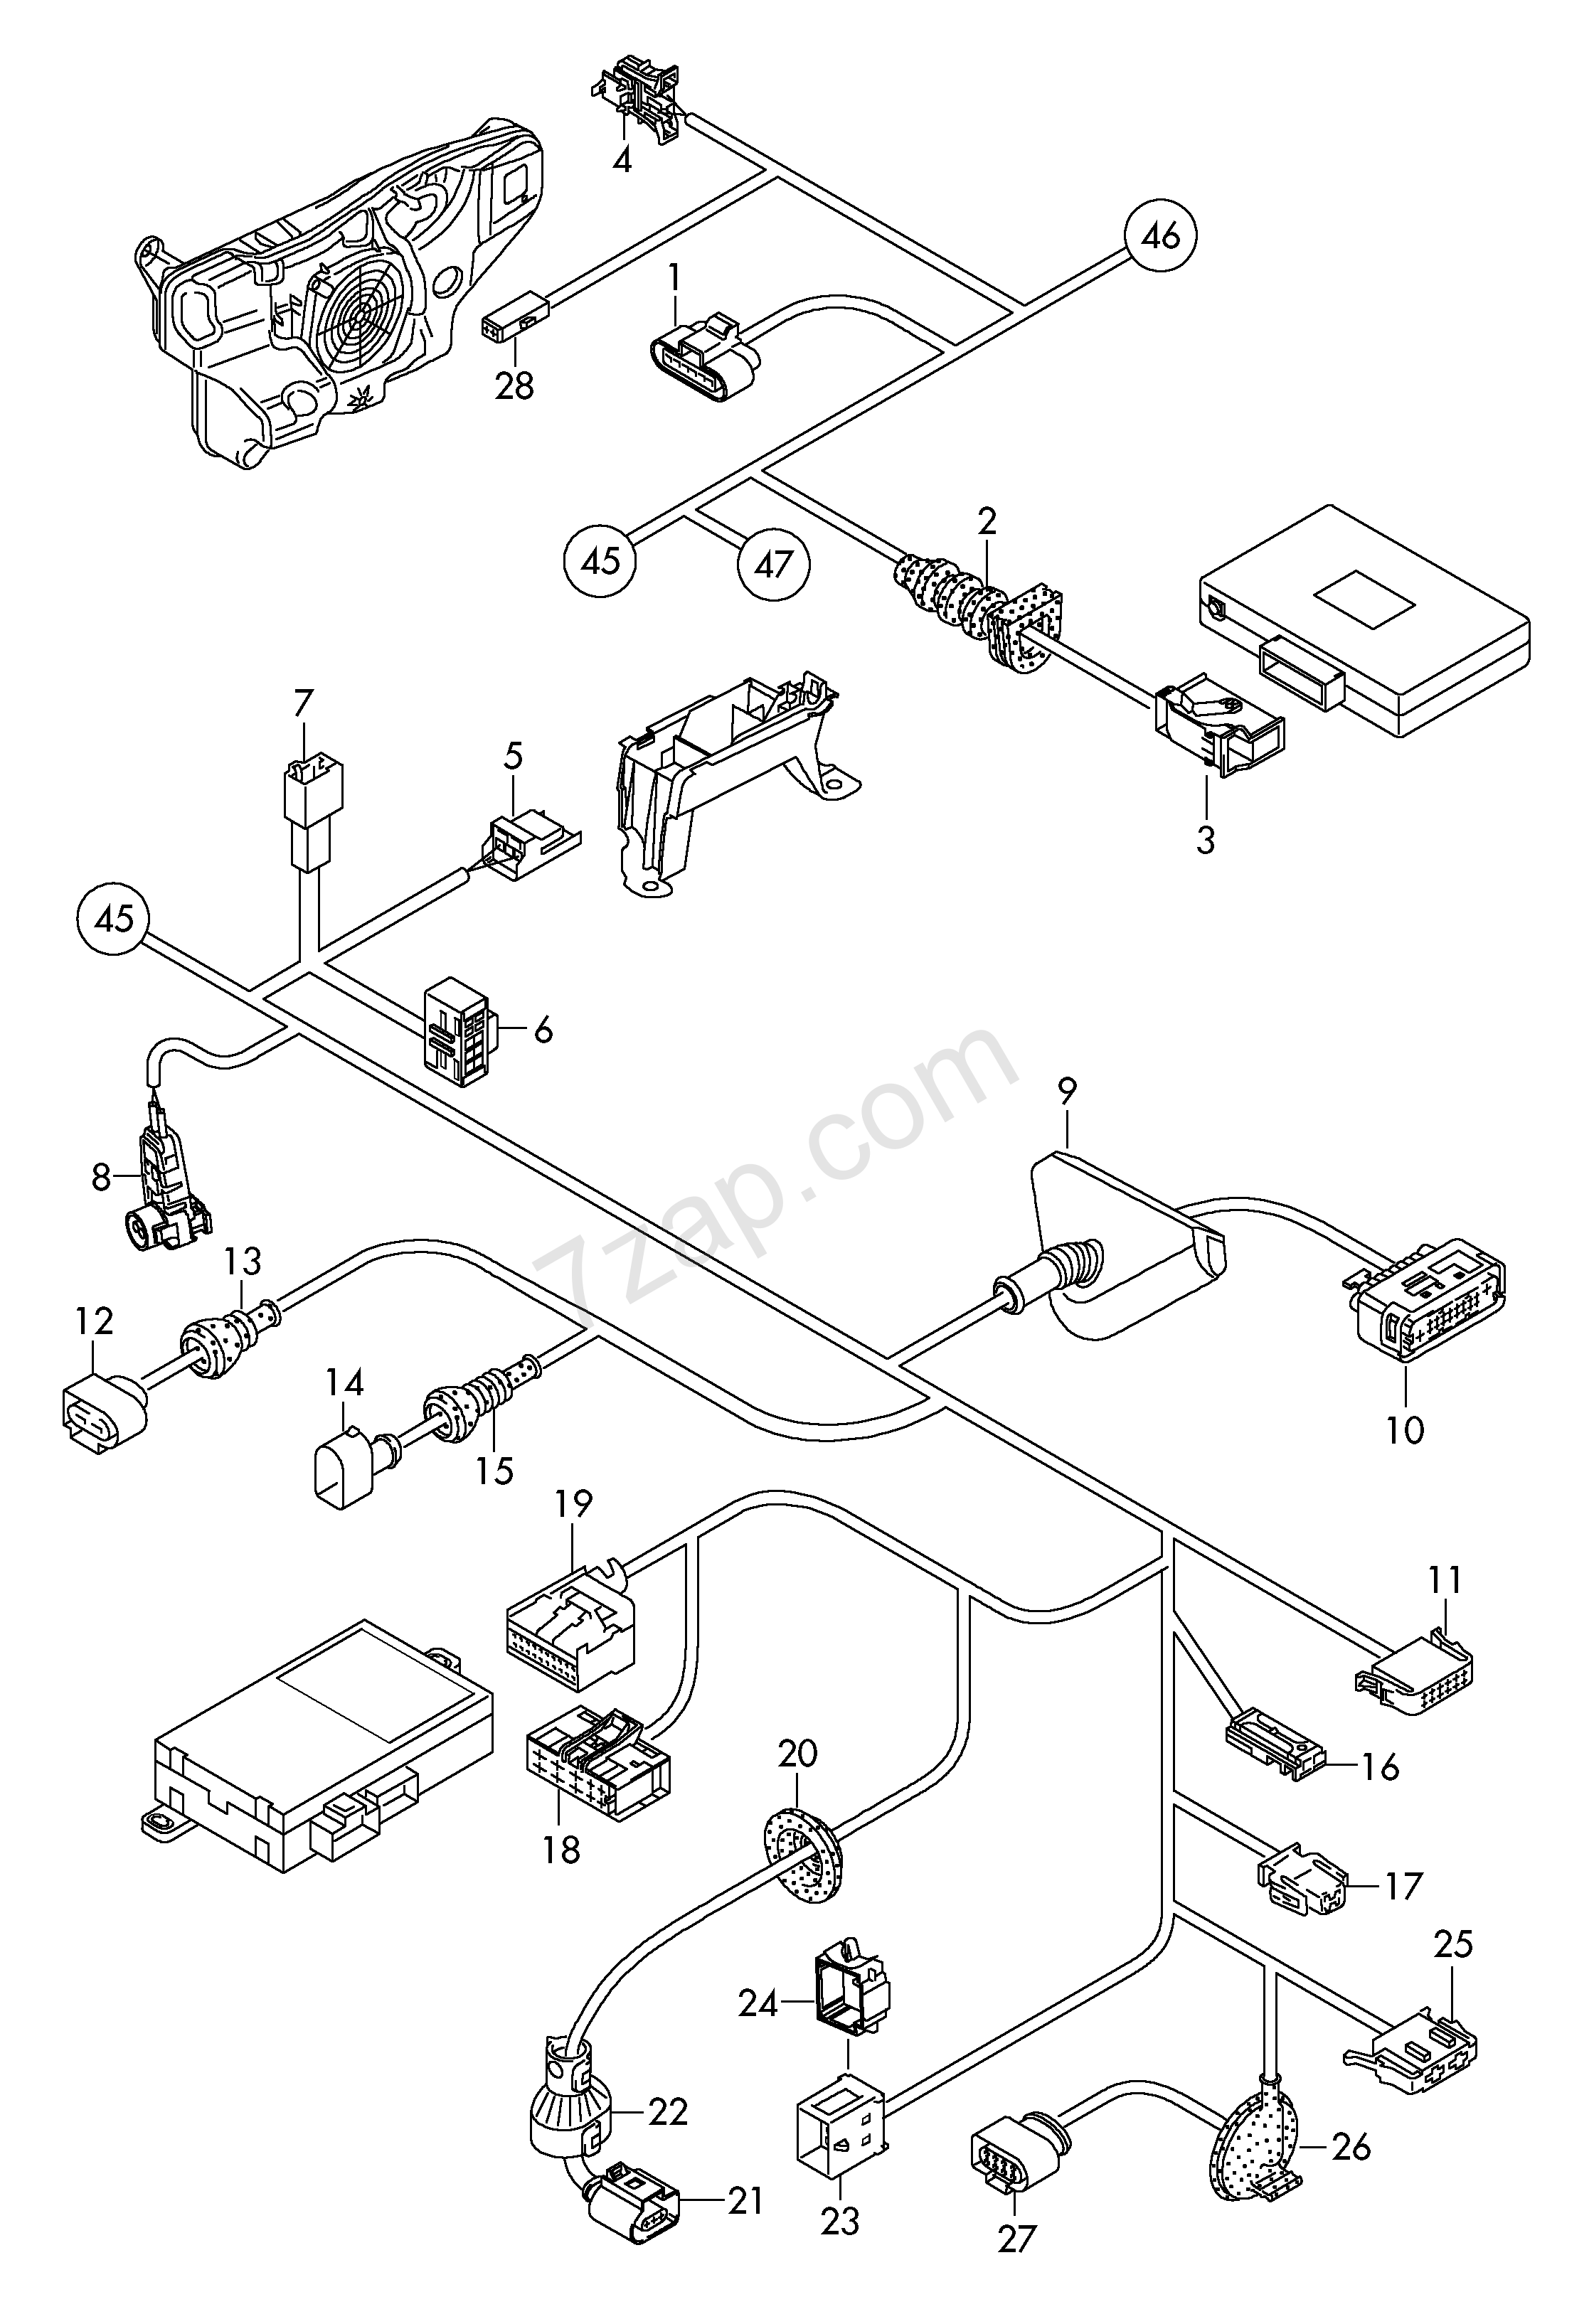 Individual Parts Wiring Harness For Interior Are Audi A3 Cabriolet Diagram Cabrioleta3ca Mexico 2012 Year